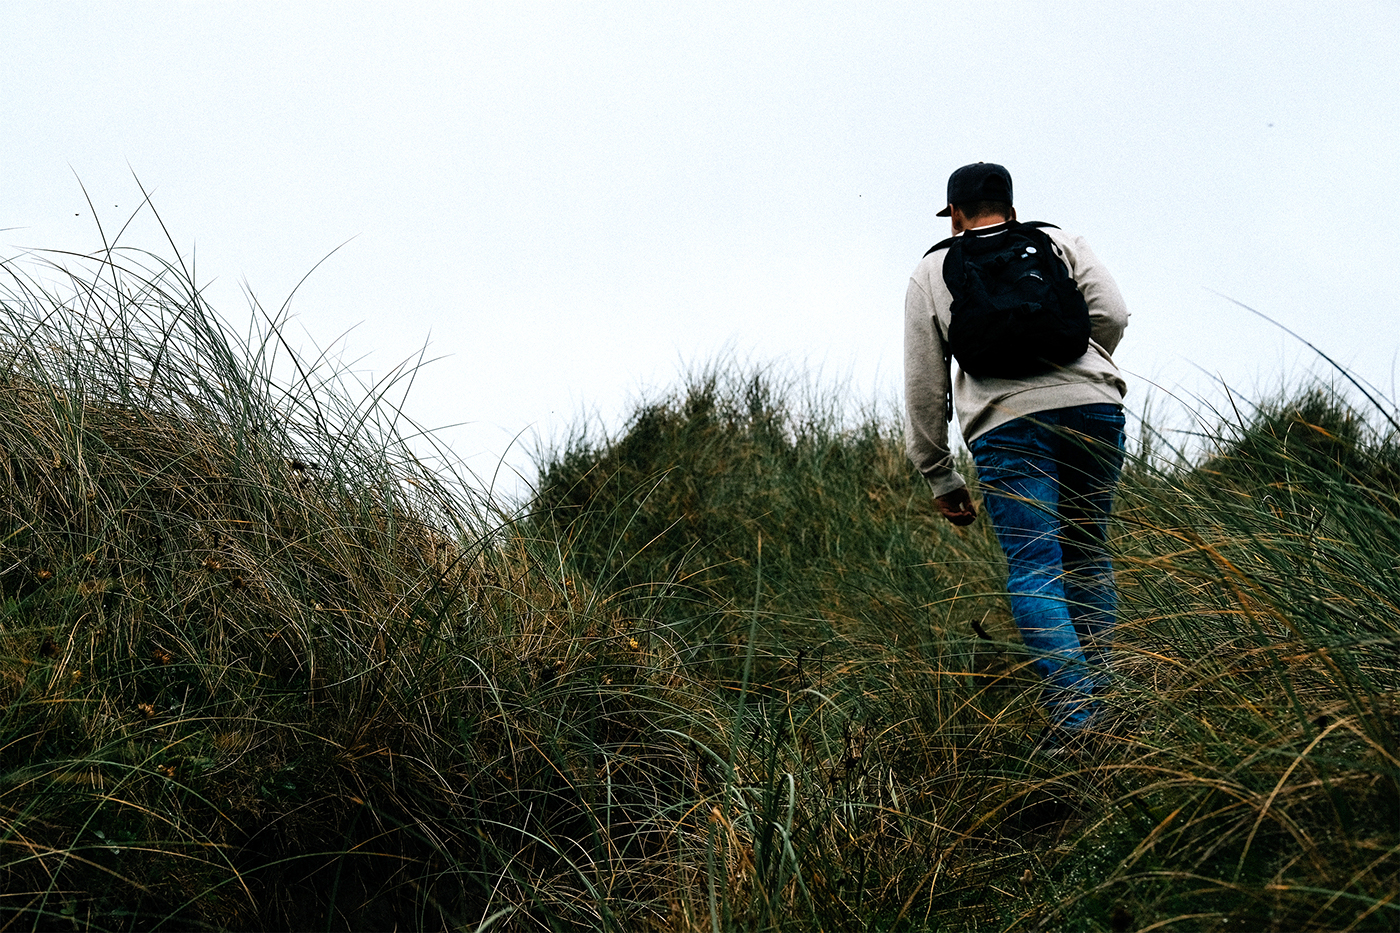 Melancholy Nature Photography  Video Editing cinematography Ireland Travel Premiere Pro Ocean surfing